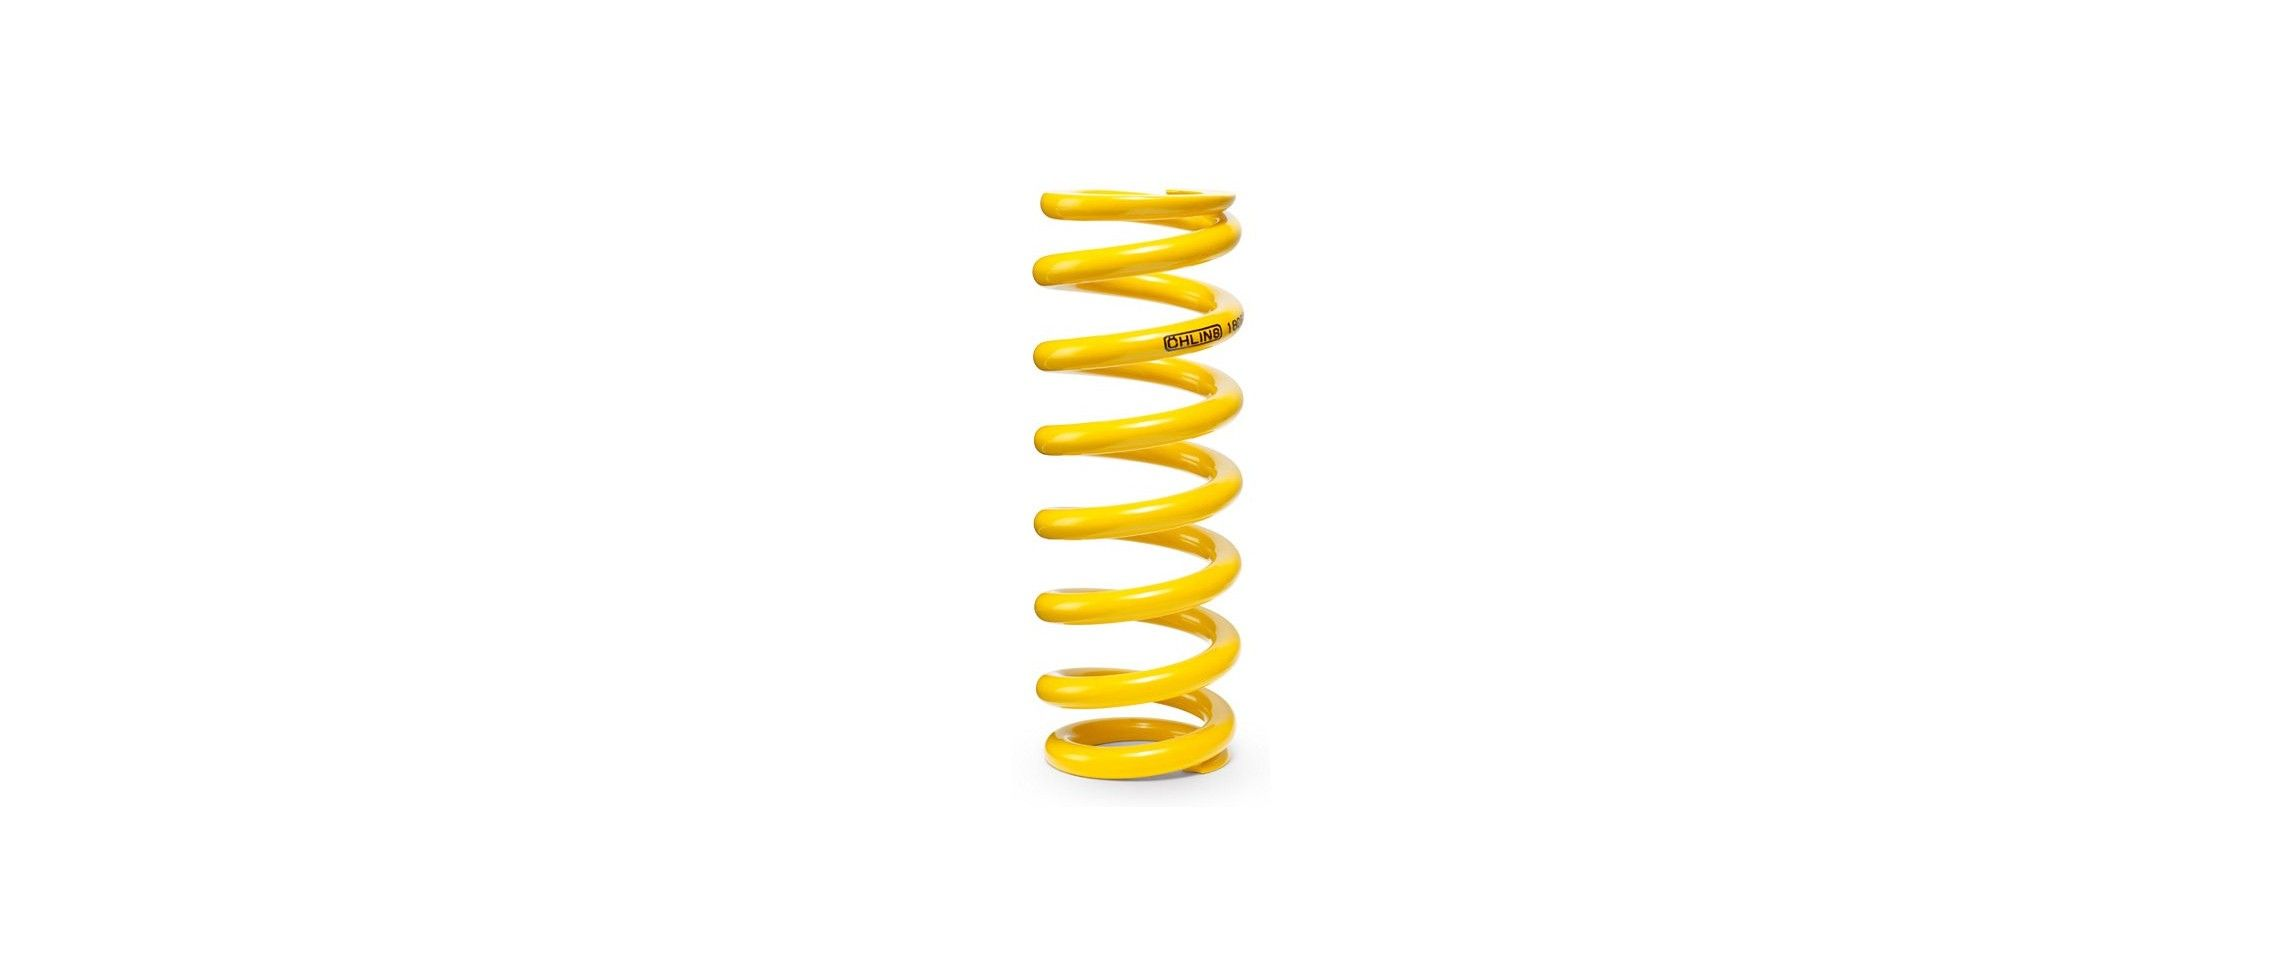 OHLINS 85IN KENEVO LIGHT SPRING 68 N MM 388 LB IN 18074 07